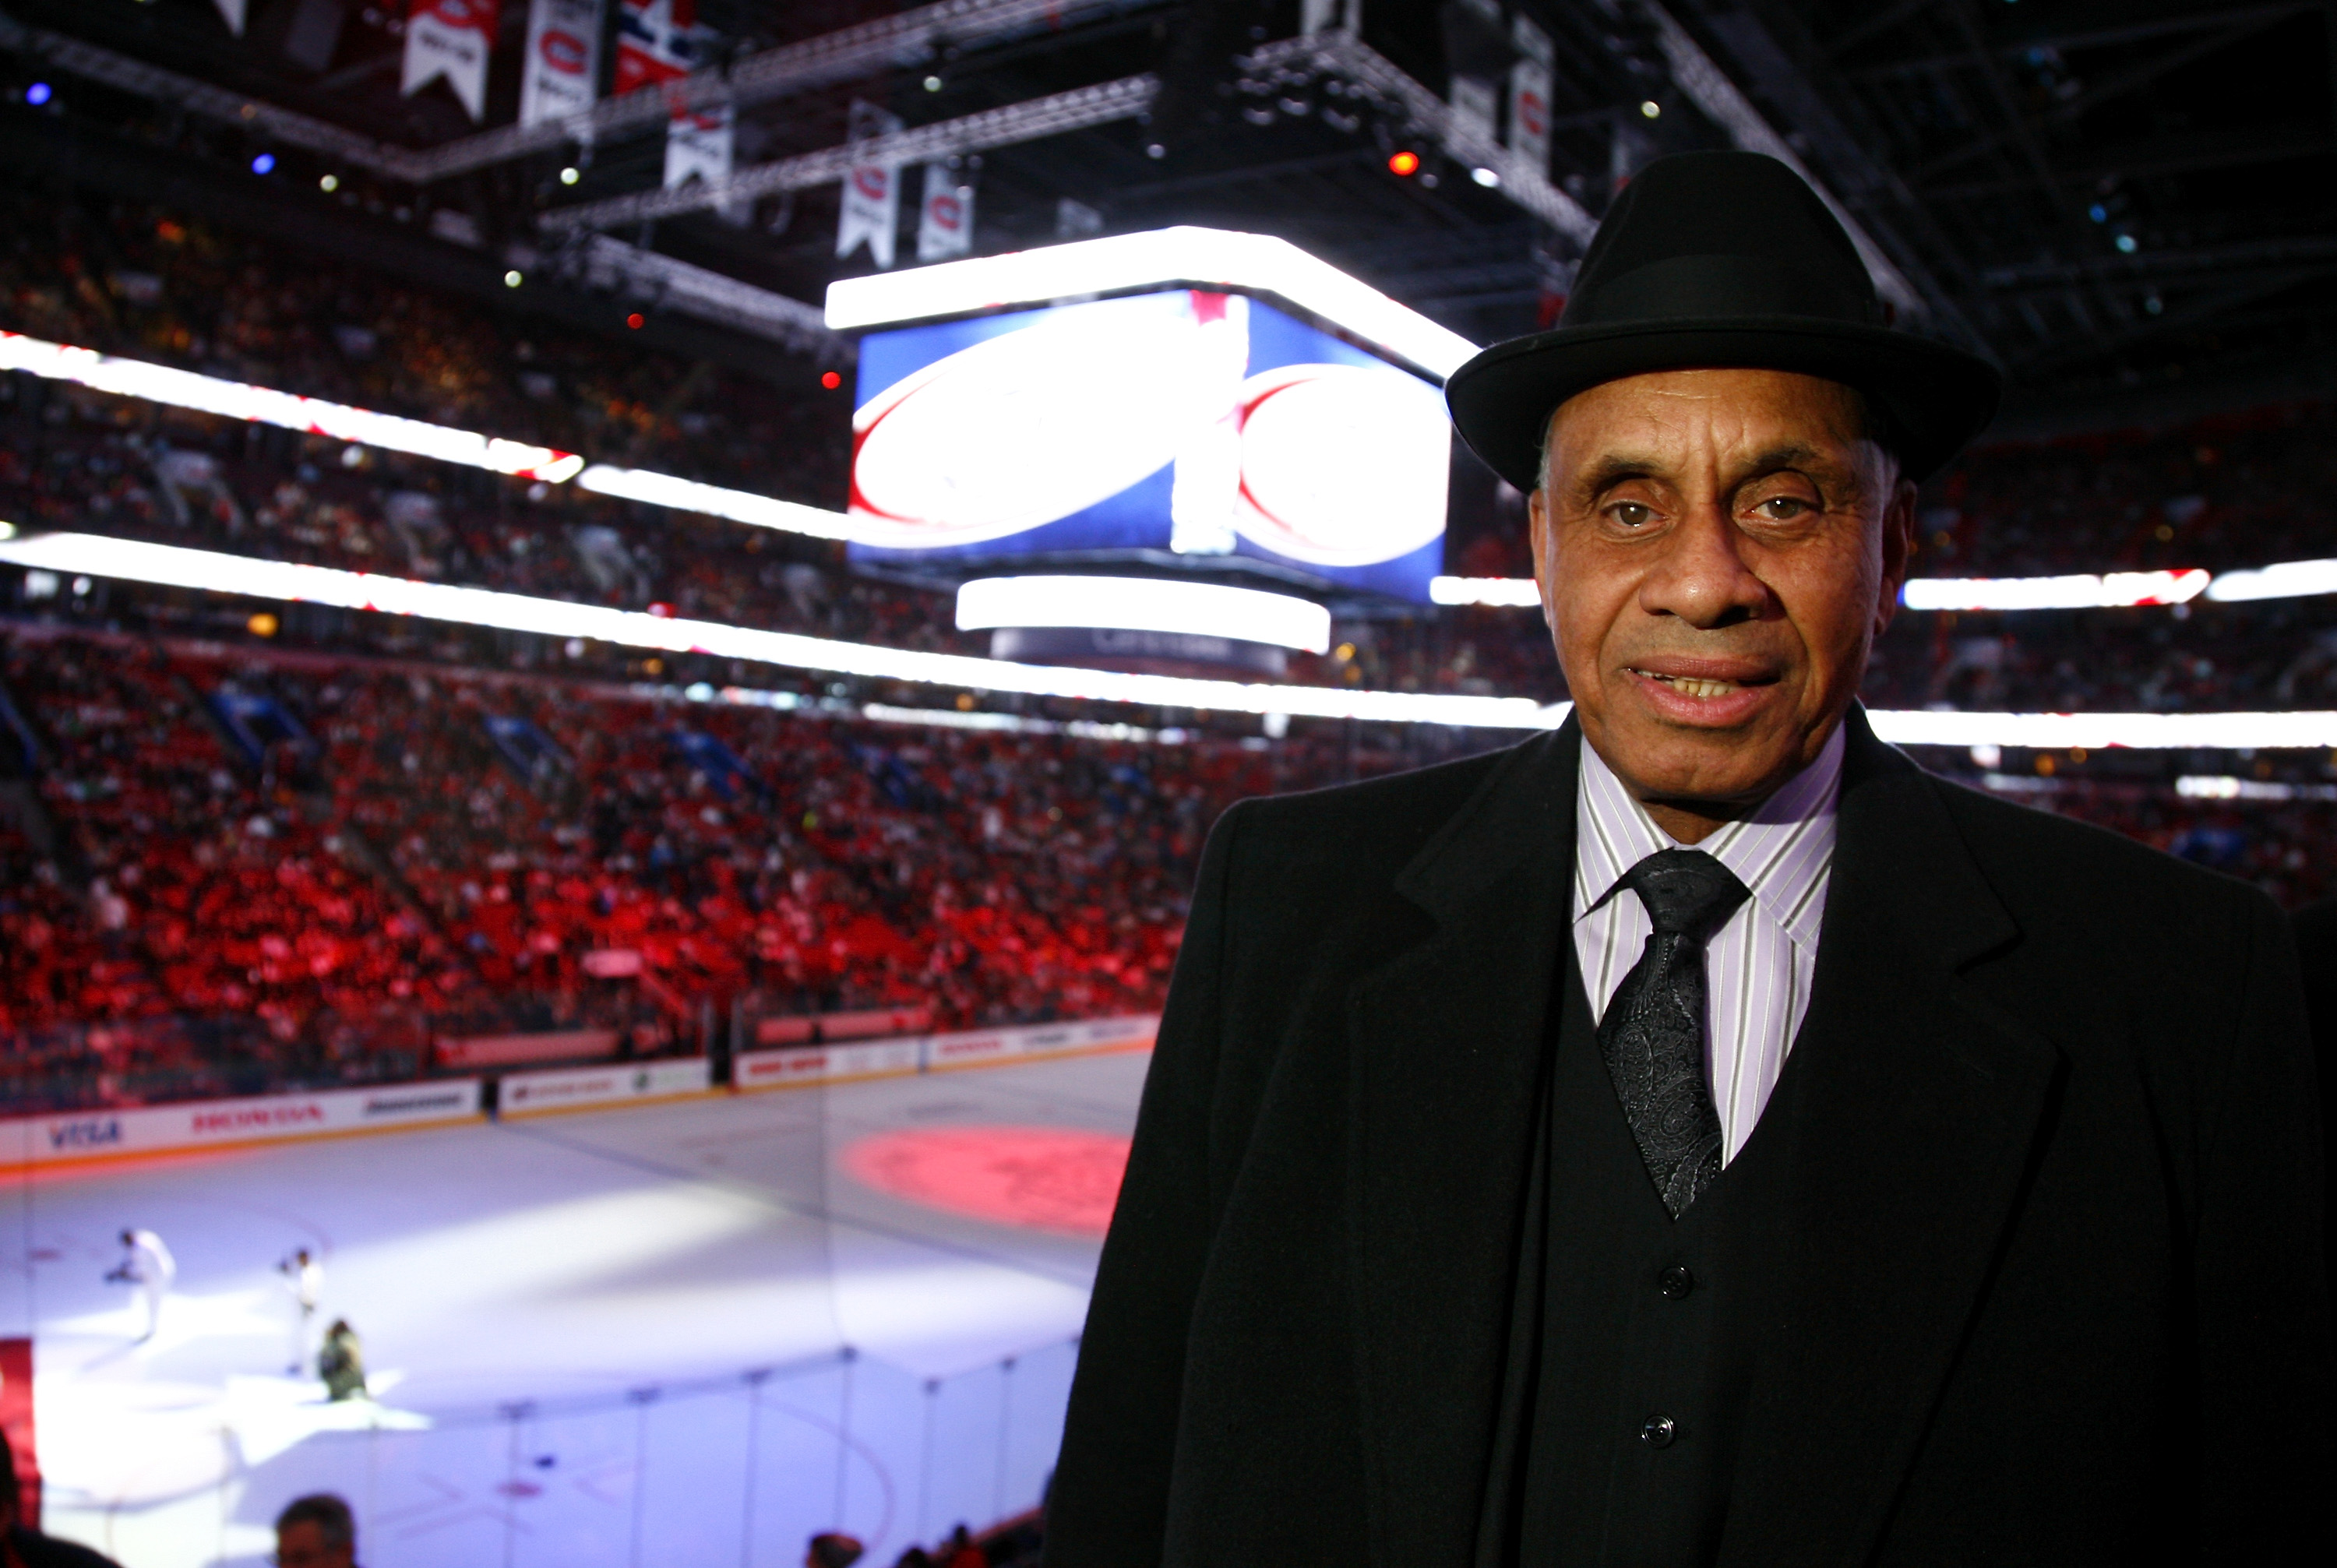 Willie O'Ree Attends NHL All Star Game